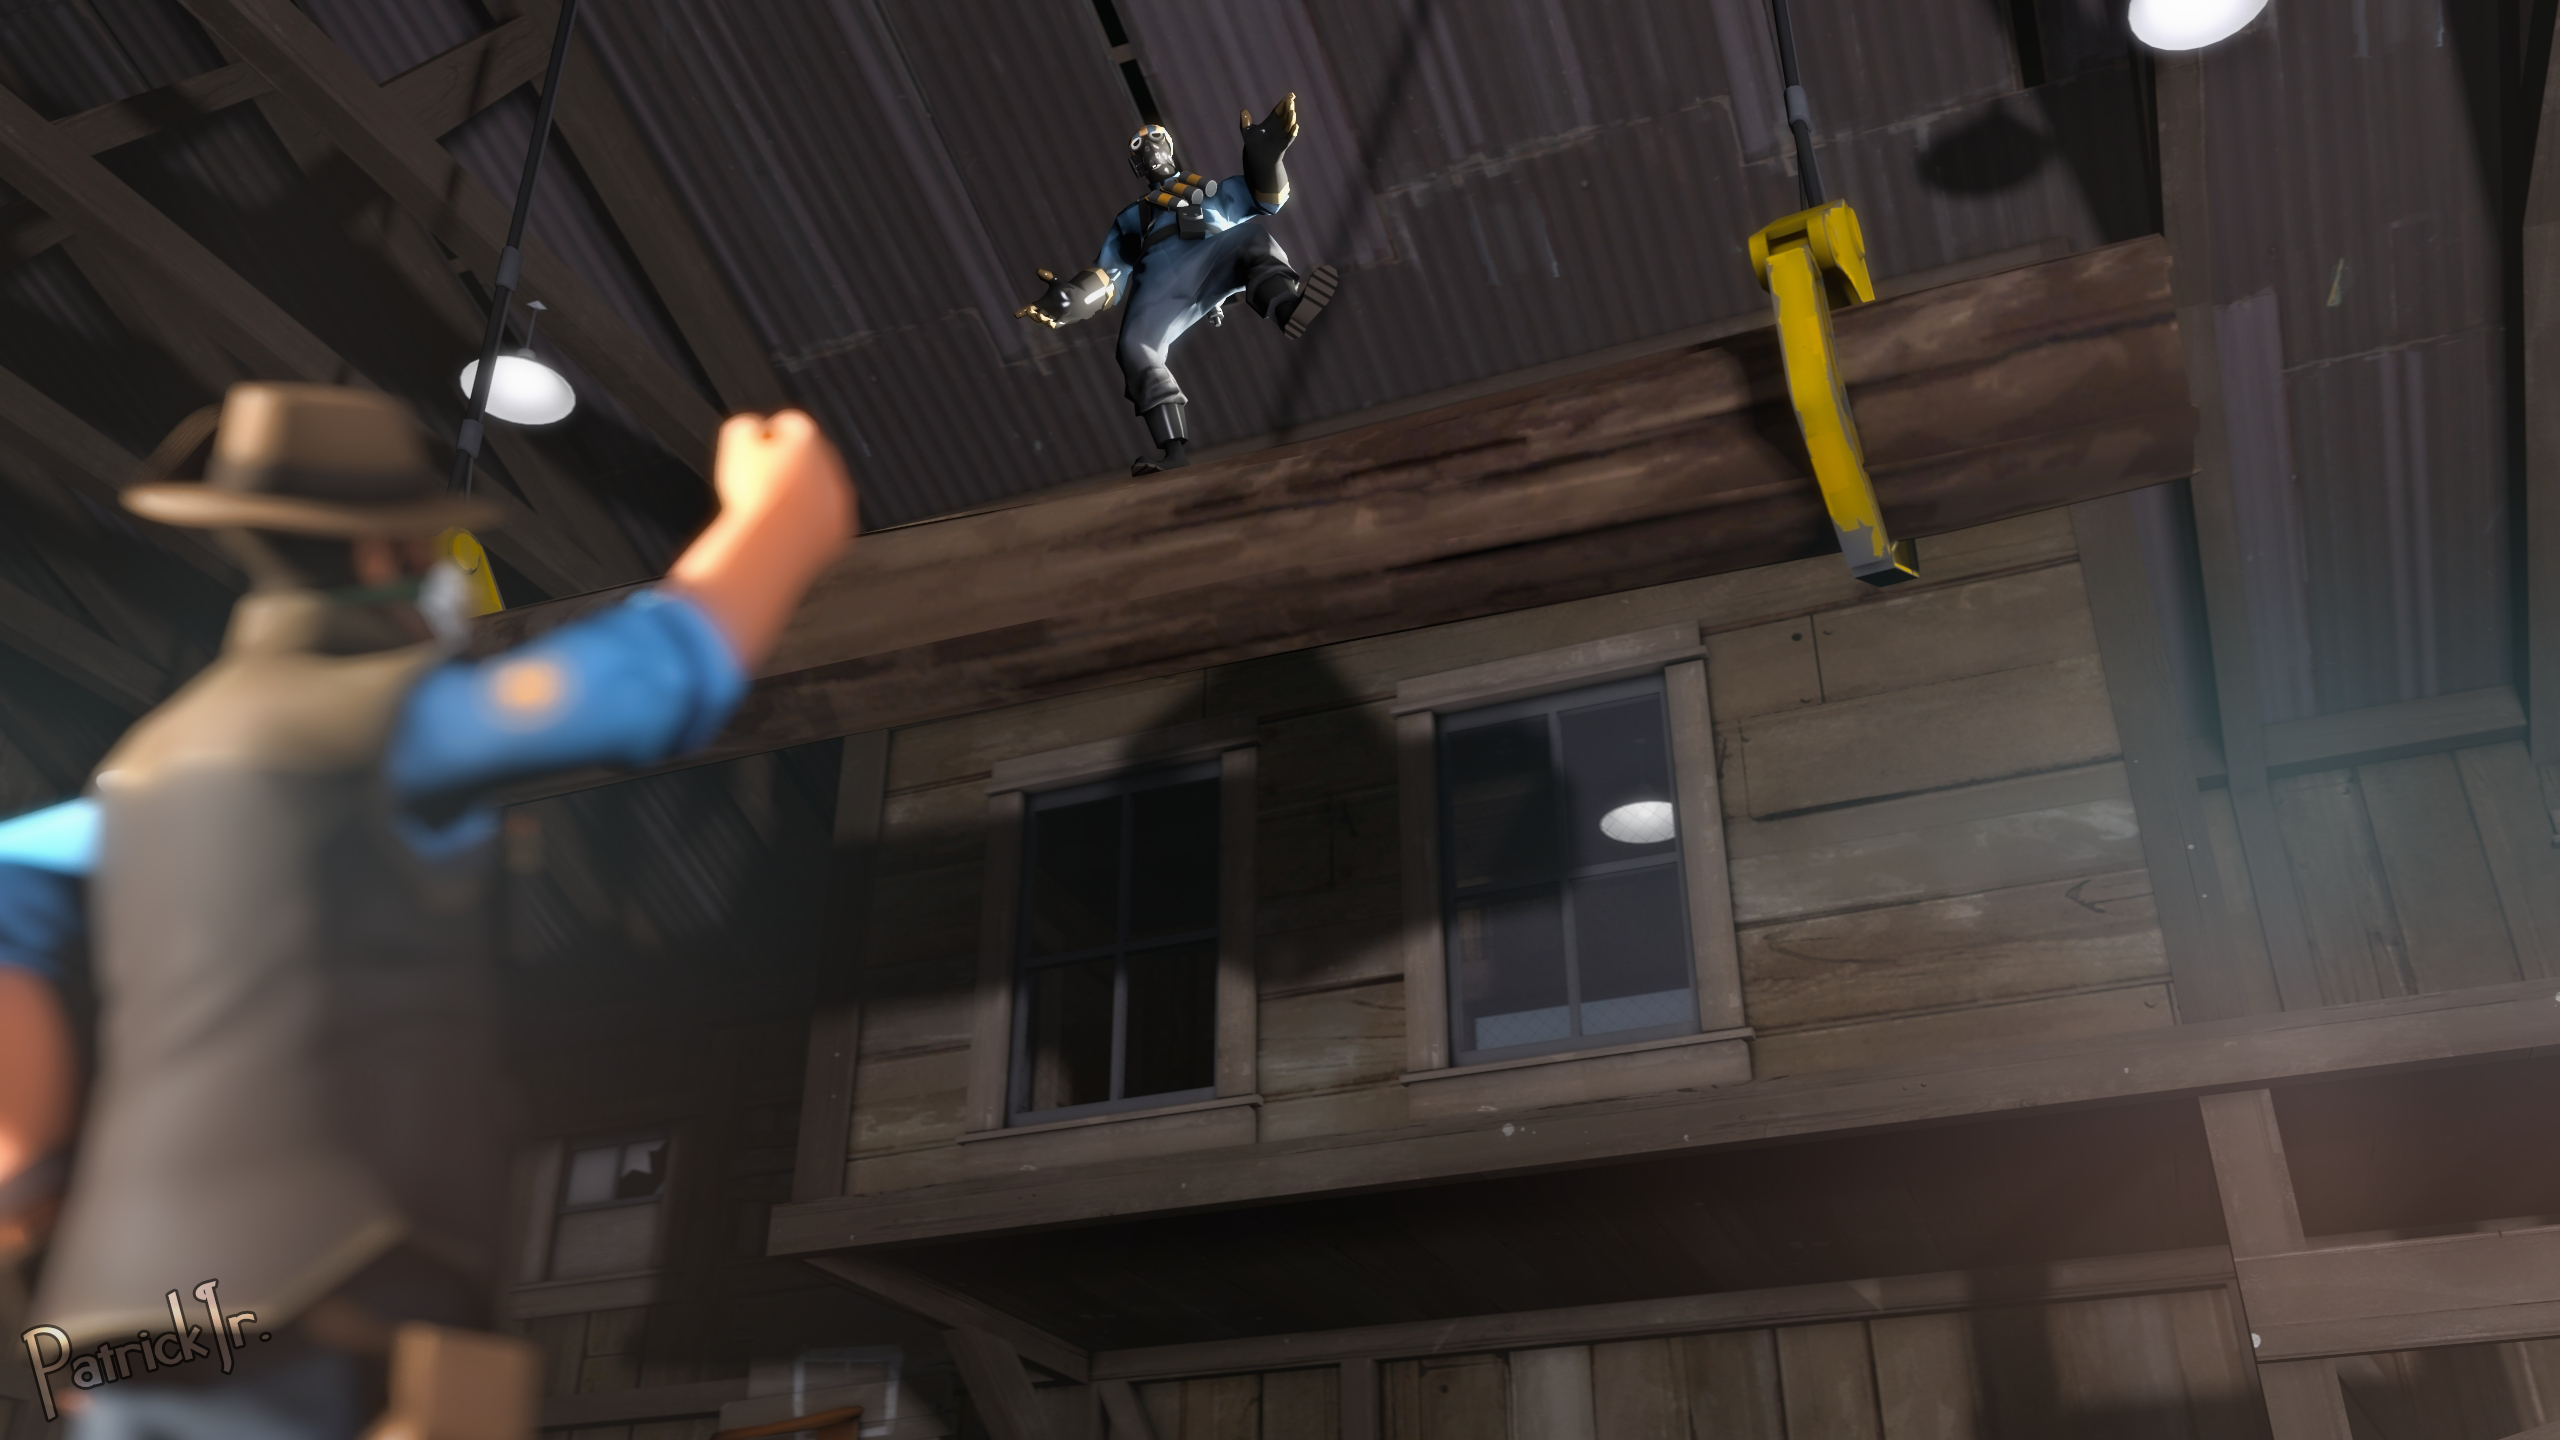 SFM Poster: Get Down! by PatrickJr